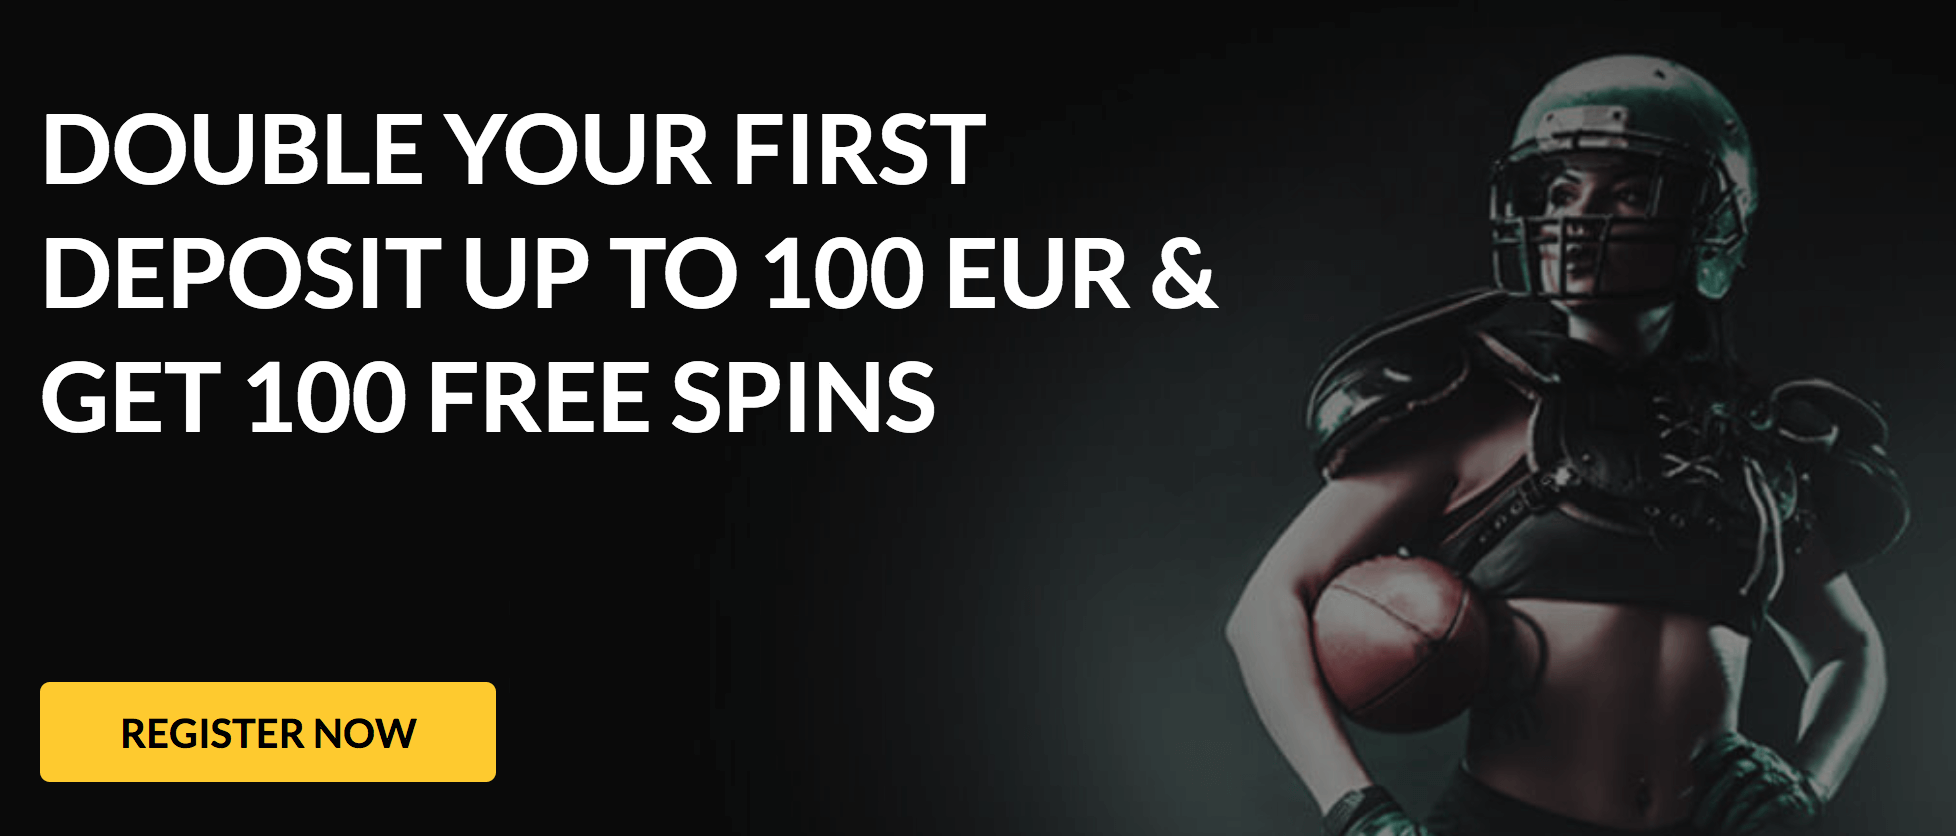 bonkersbet bonus betting